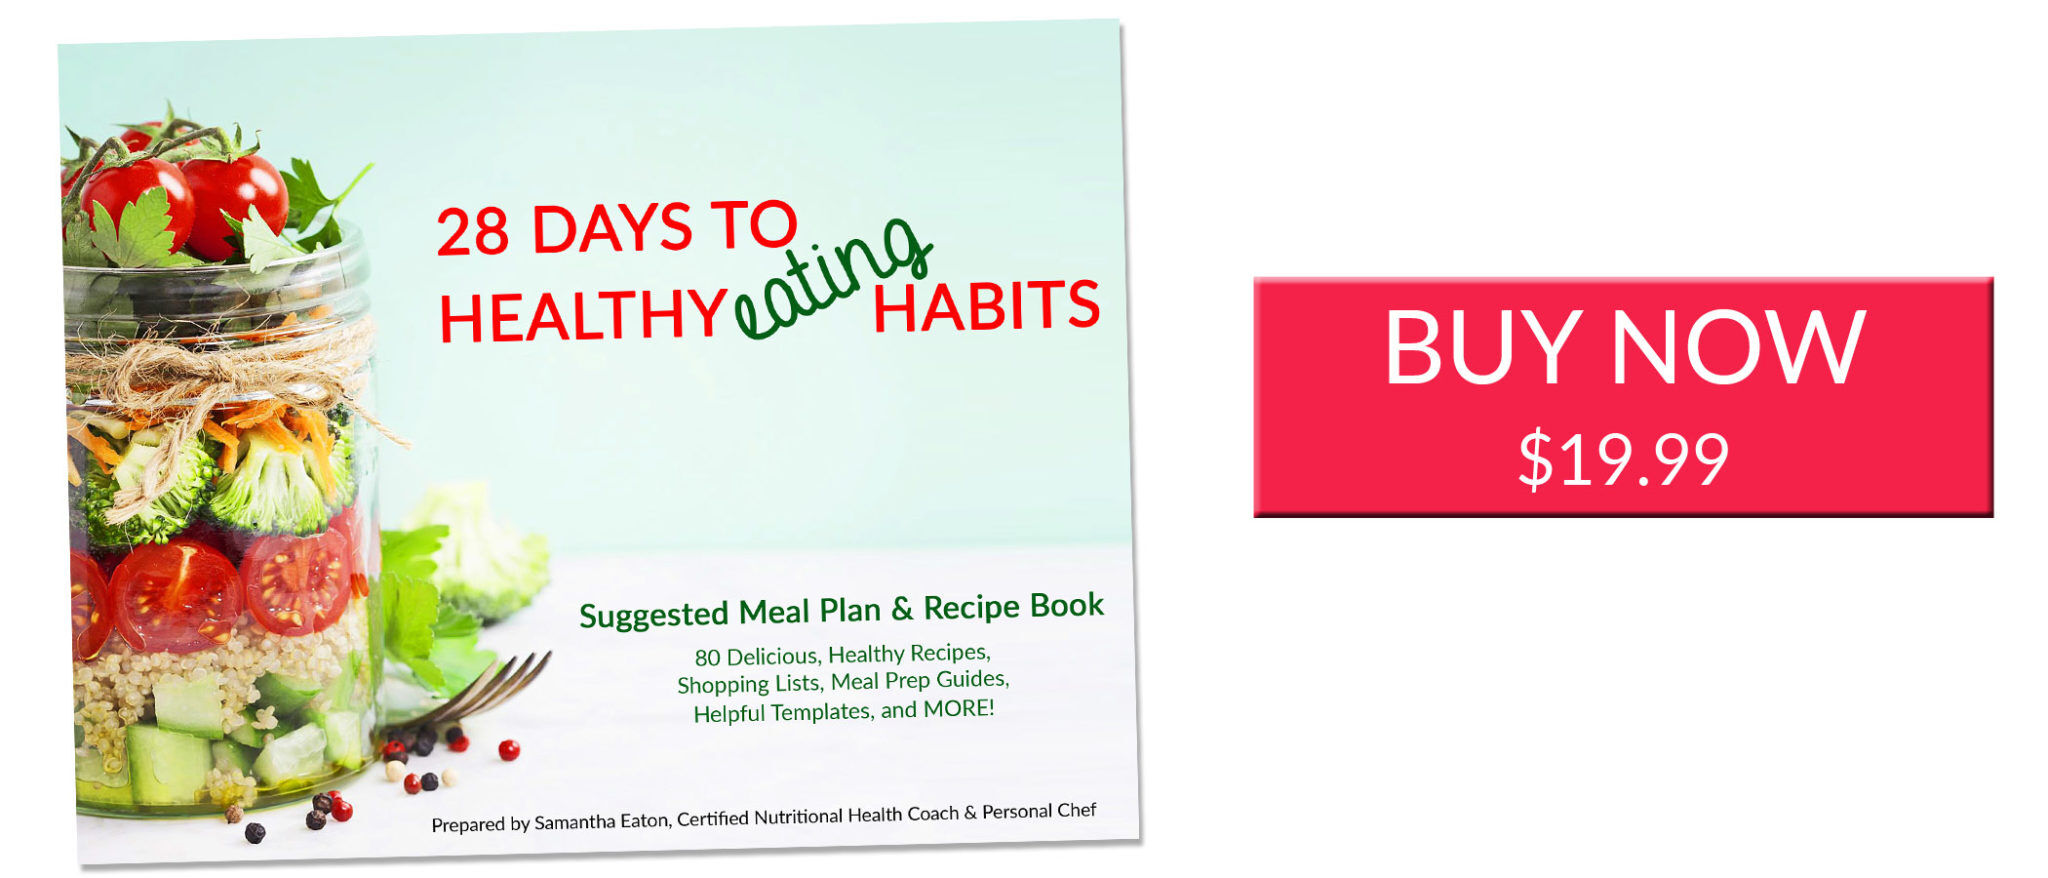 28 days to healthier eating habits recipe book buy now